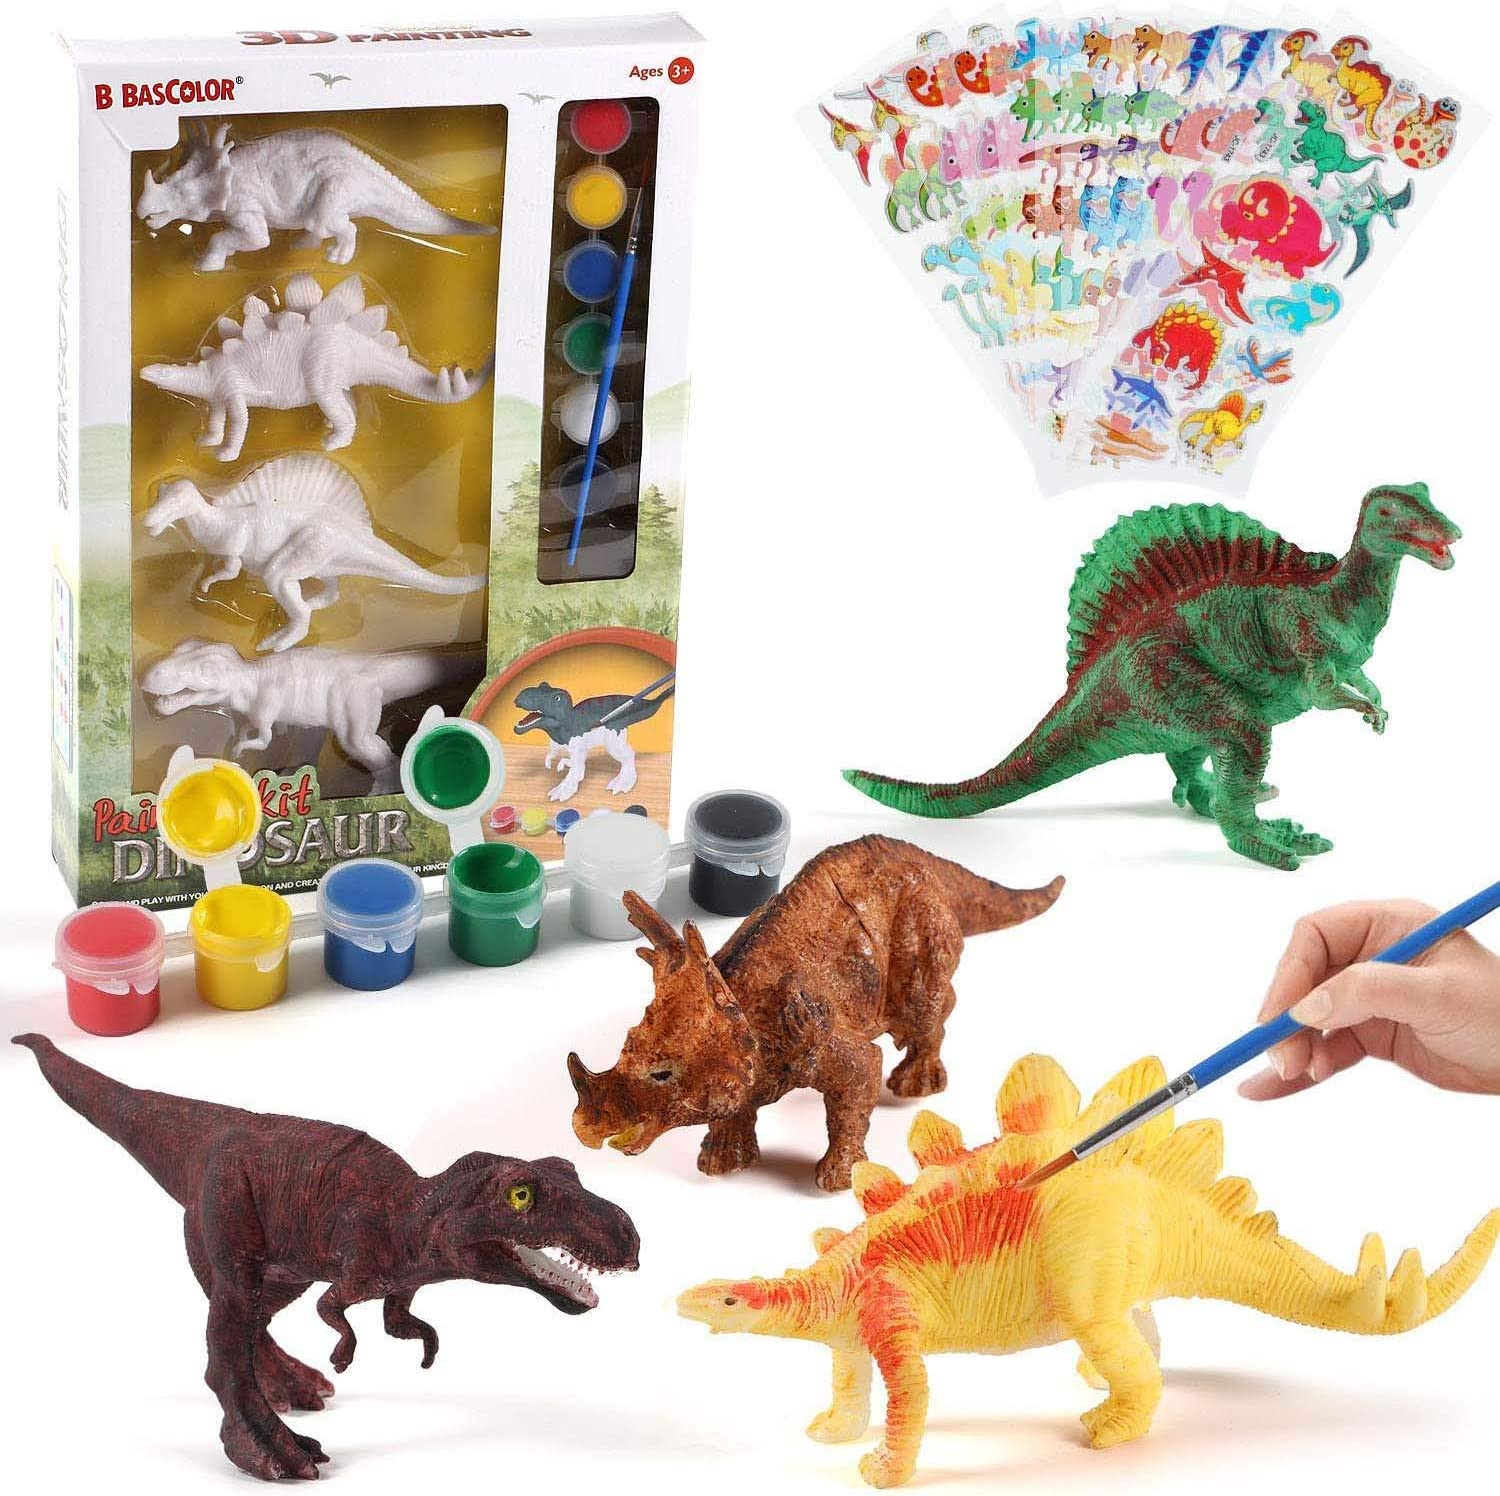 Amazon Com Neowows Kids Crafts And Arts Supplies Set Painting Kit Decorate Your Own Dinosaur Figurines Diy Dinosaur Arts Crafts 3d Painting Dinosaurs Toys For Kids Boys Girls Age 4 5 6 7